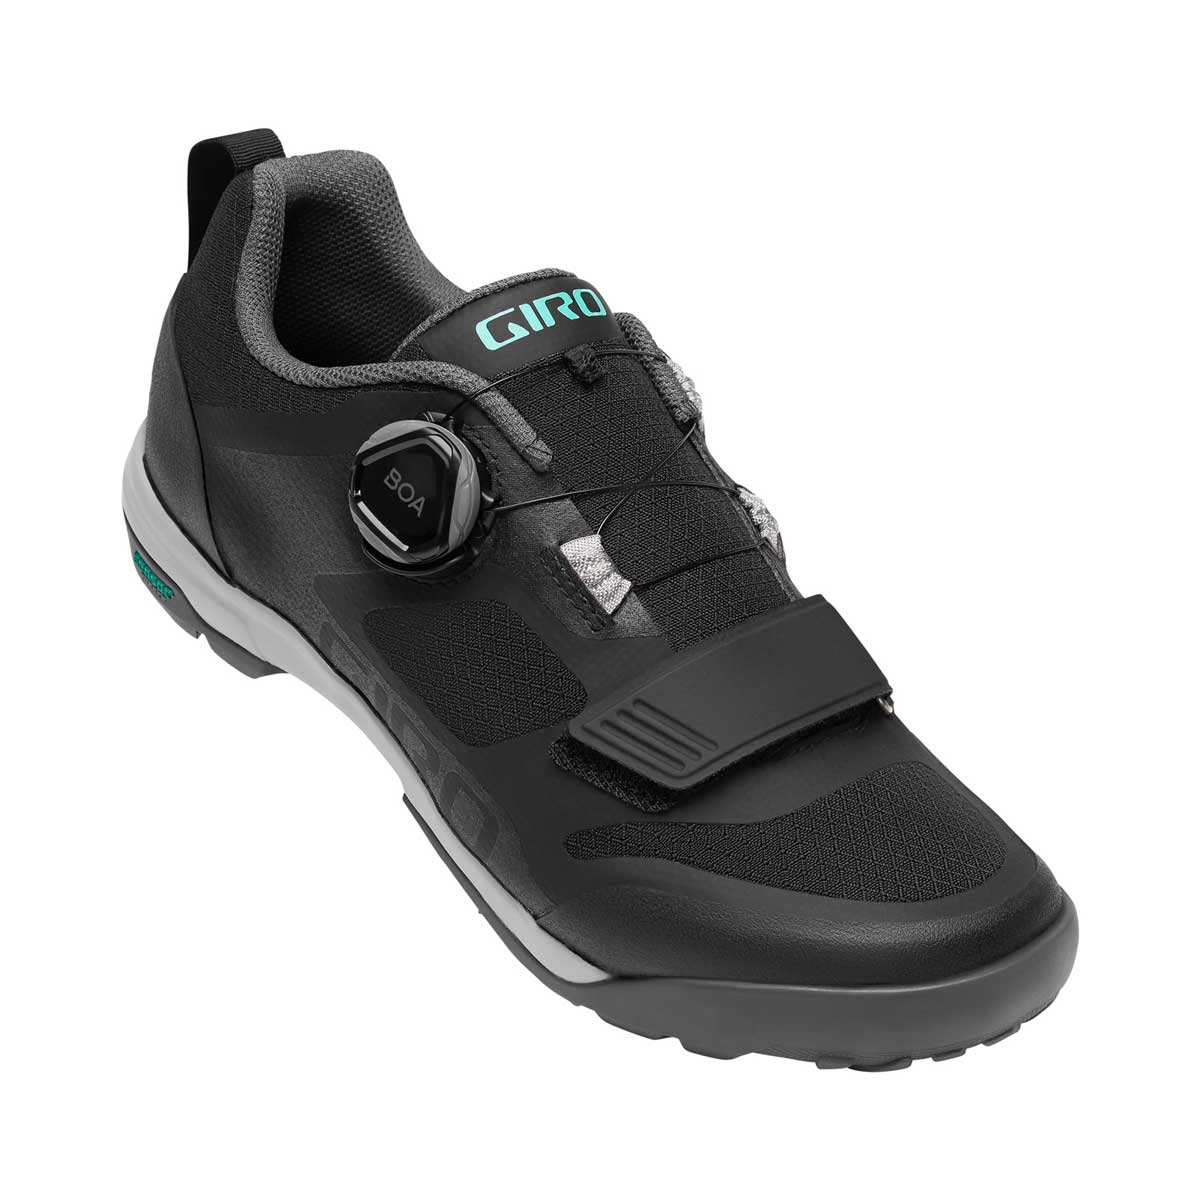 Giro women's Ventana MTB Shoe in Black main view